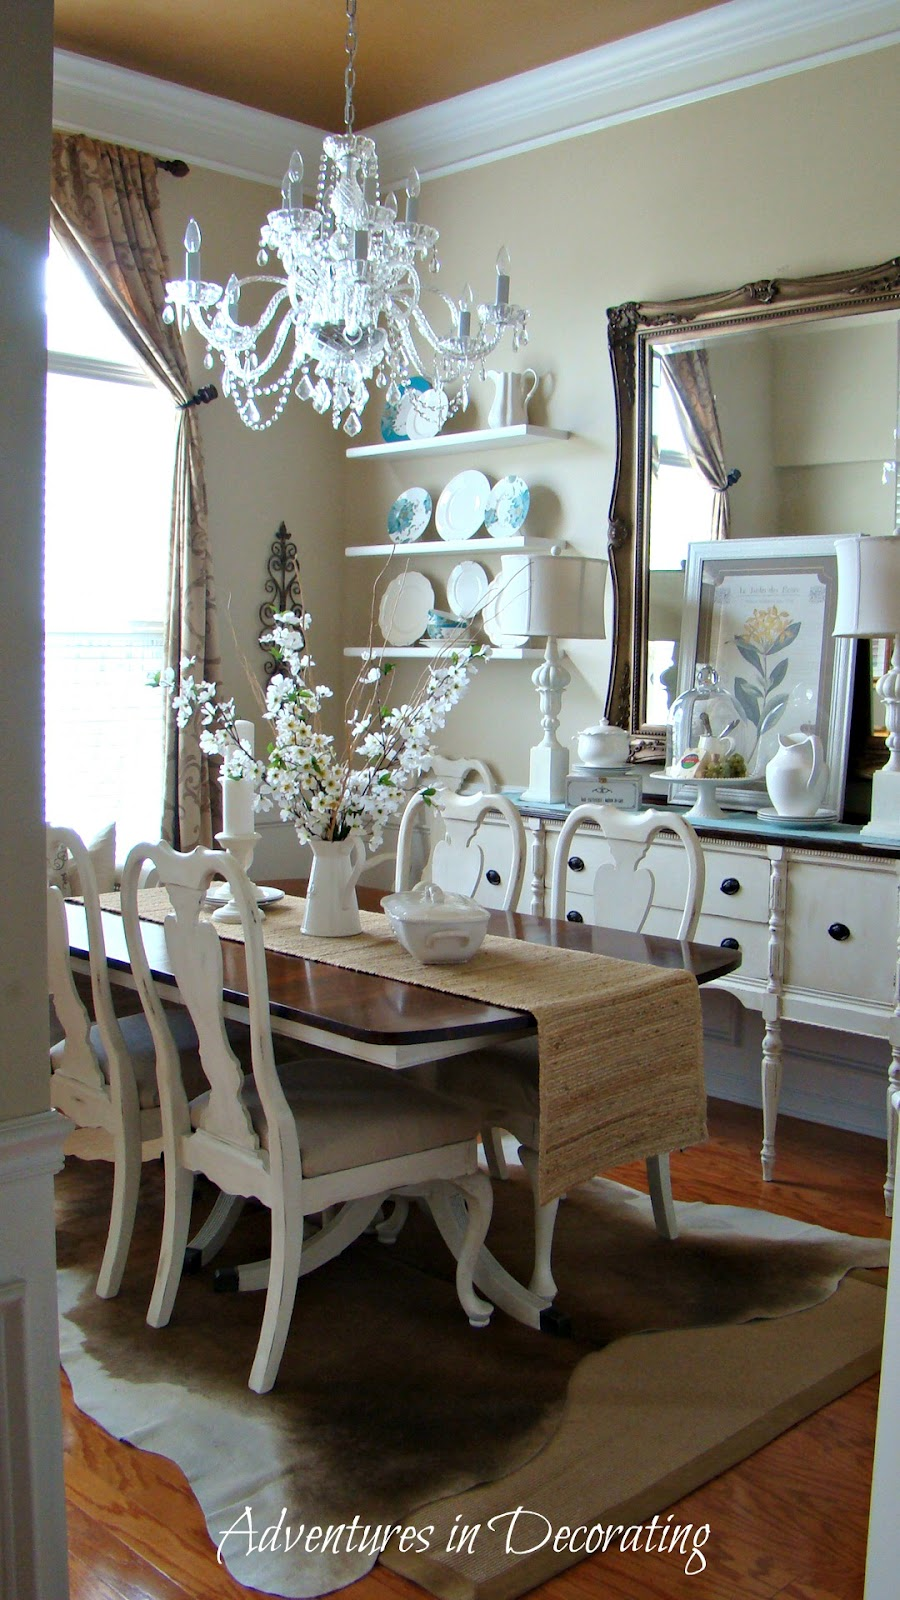 adventures in decorating shared her dining room love it and love all